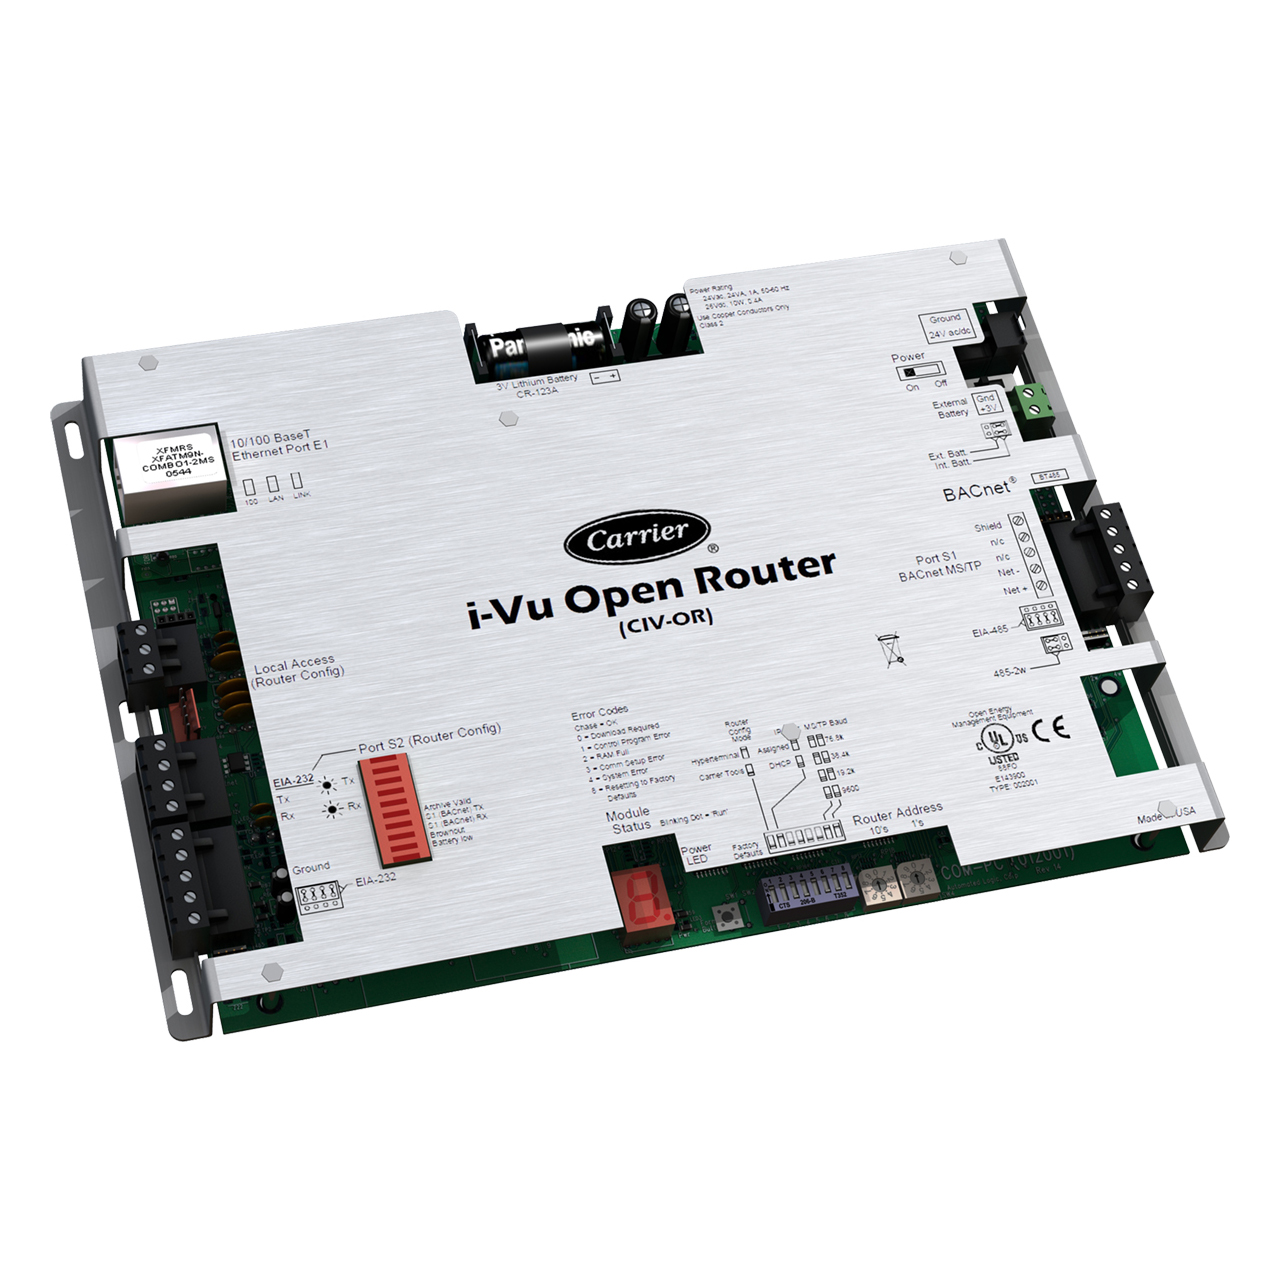 carrier-CIV-OR-ivu-open-router-network-integration-controller